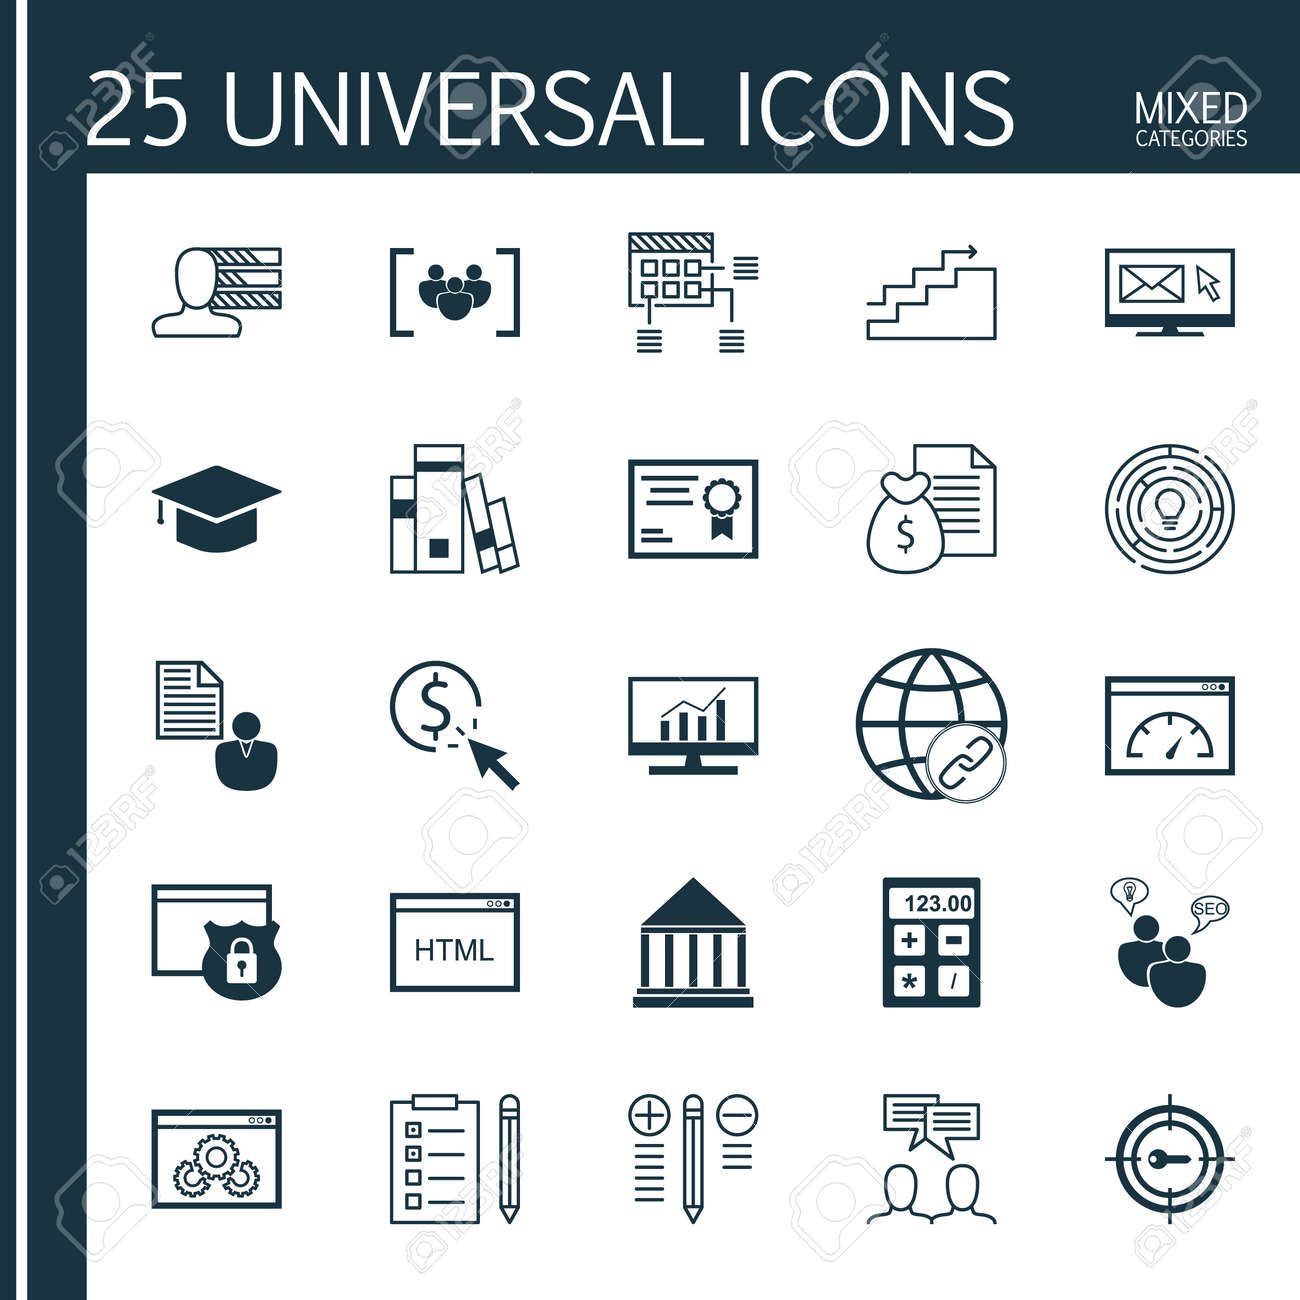 Universal Icons Set of Mixed Categories  Contains Icons on Topics